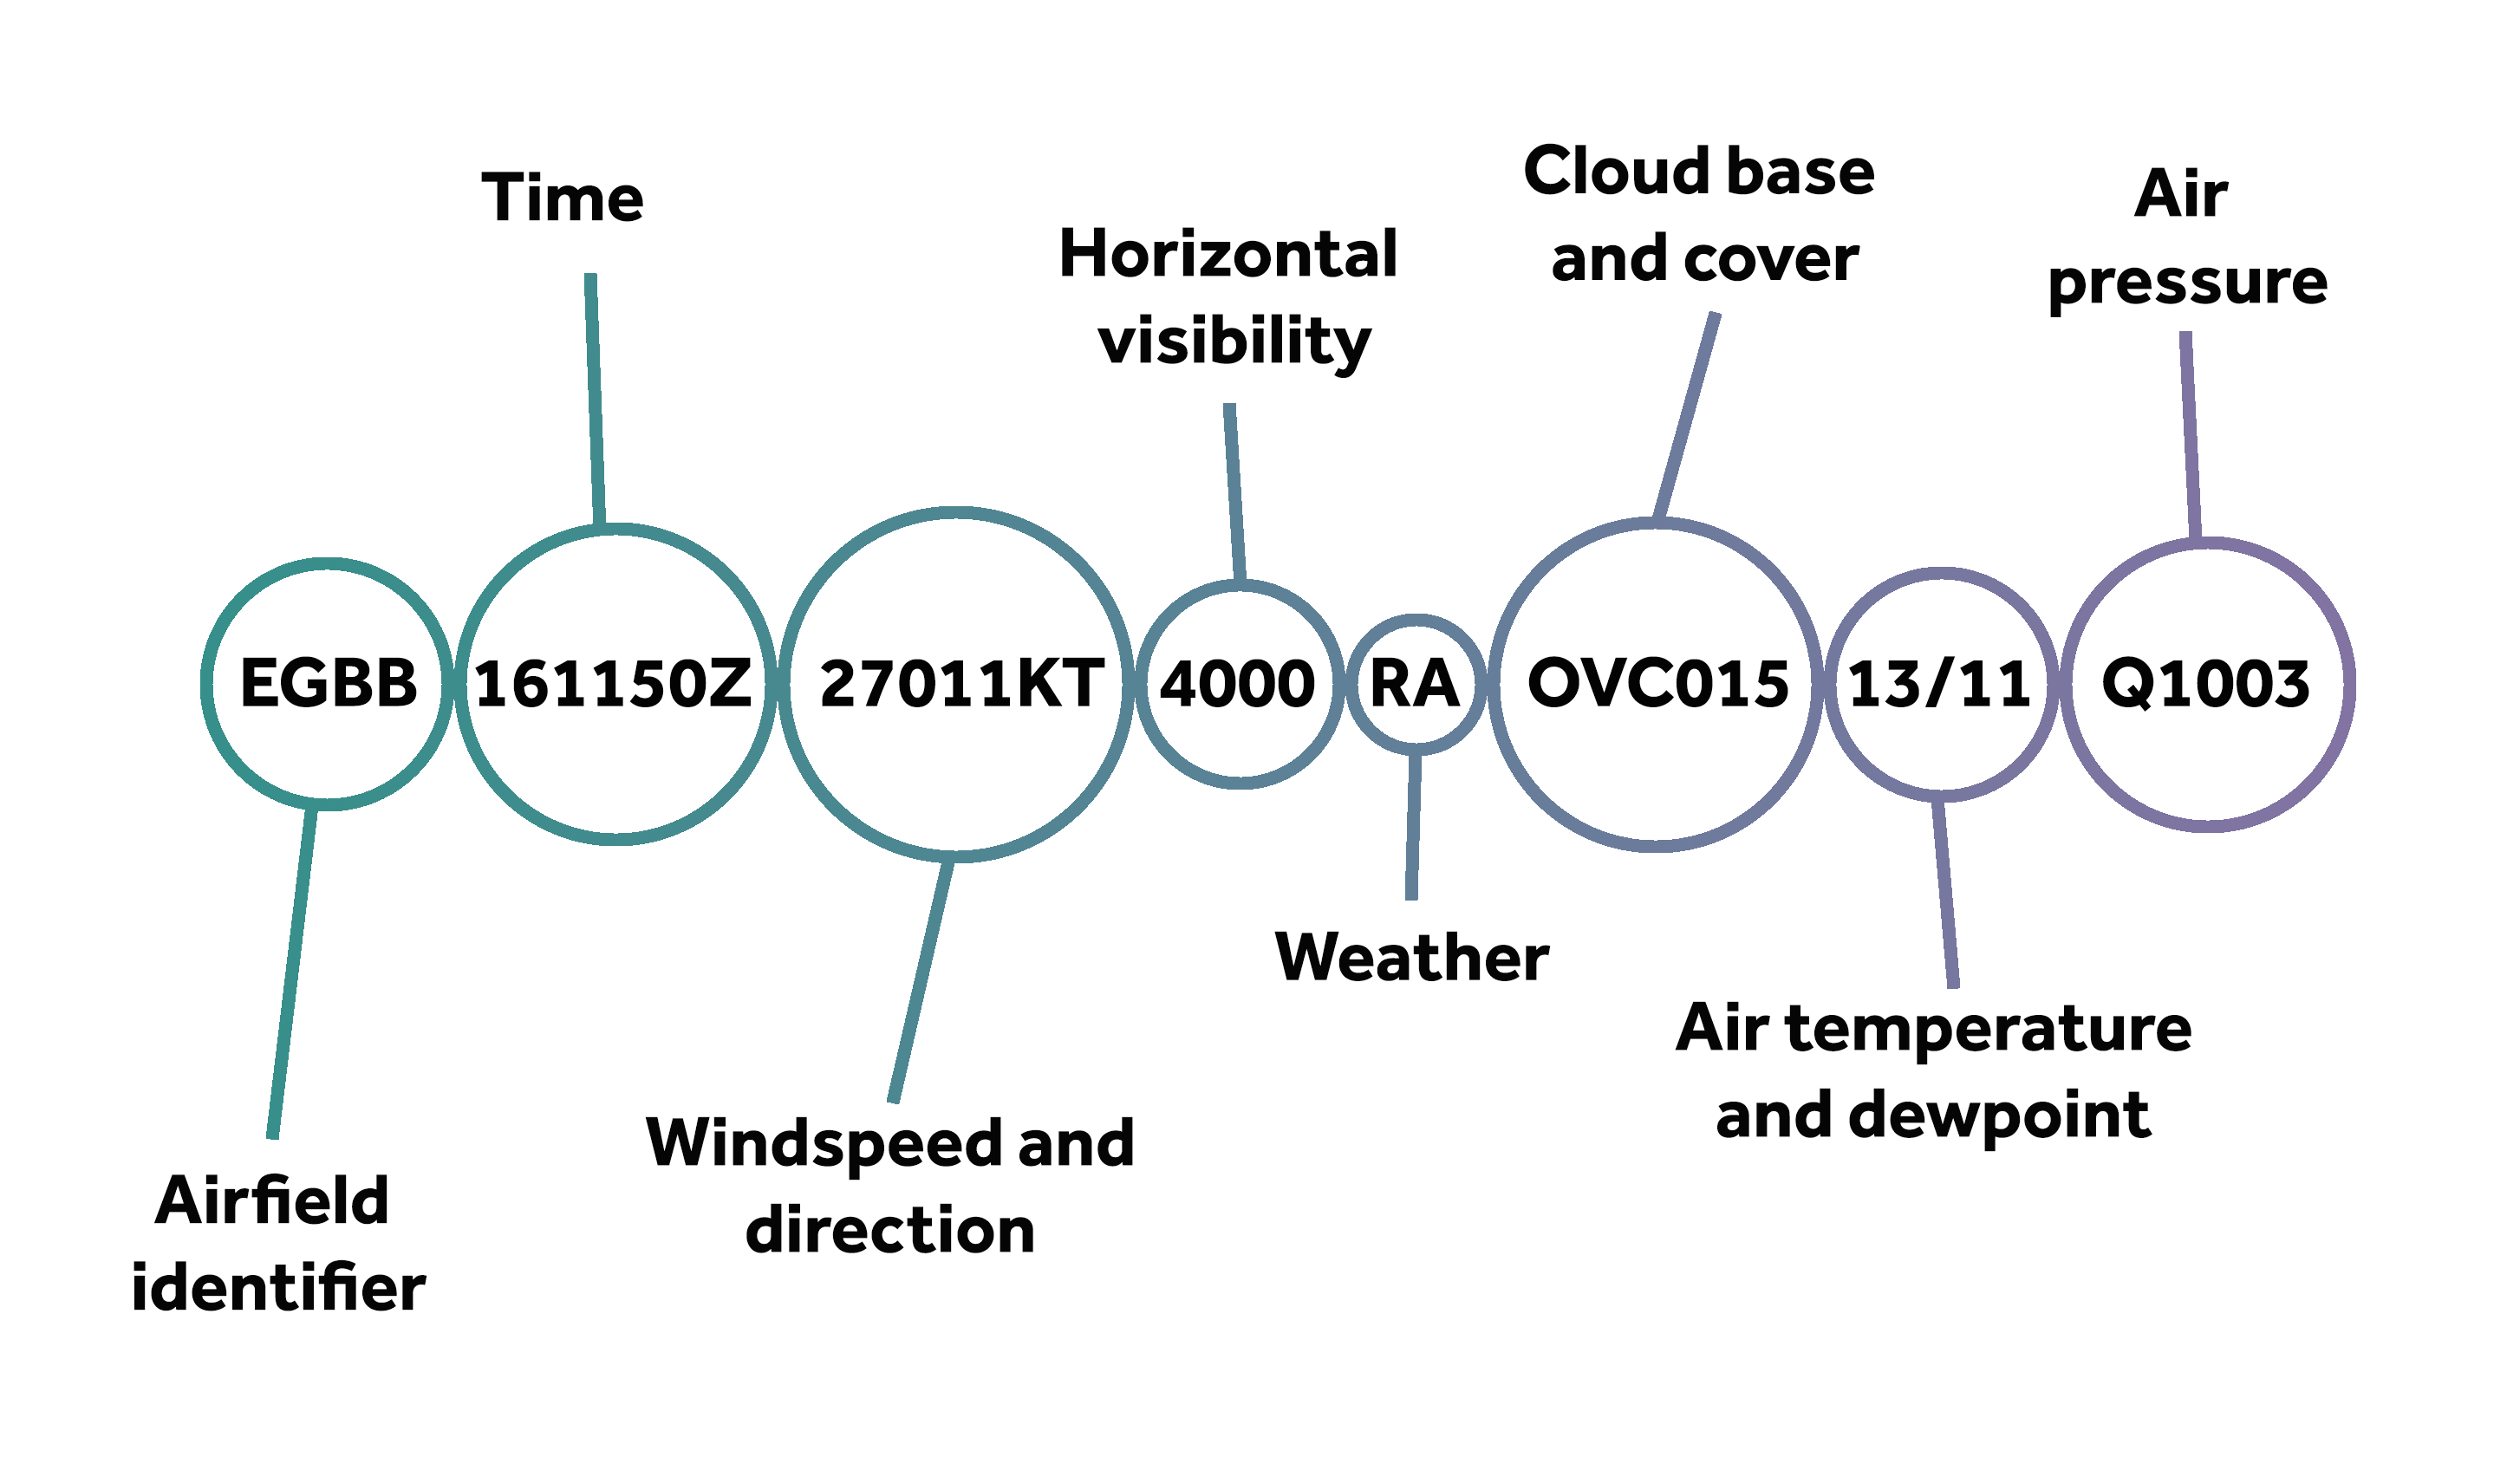 EGBB - Airfield identifier 161150Z - Time 27011KT- windspeed and direction 4000 - horizontal visibility RA - weather OVC015 - cloudbase and cover 13/11 - air temperature and dewpoint Q1003 - air pressure